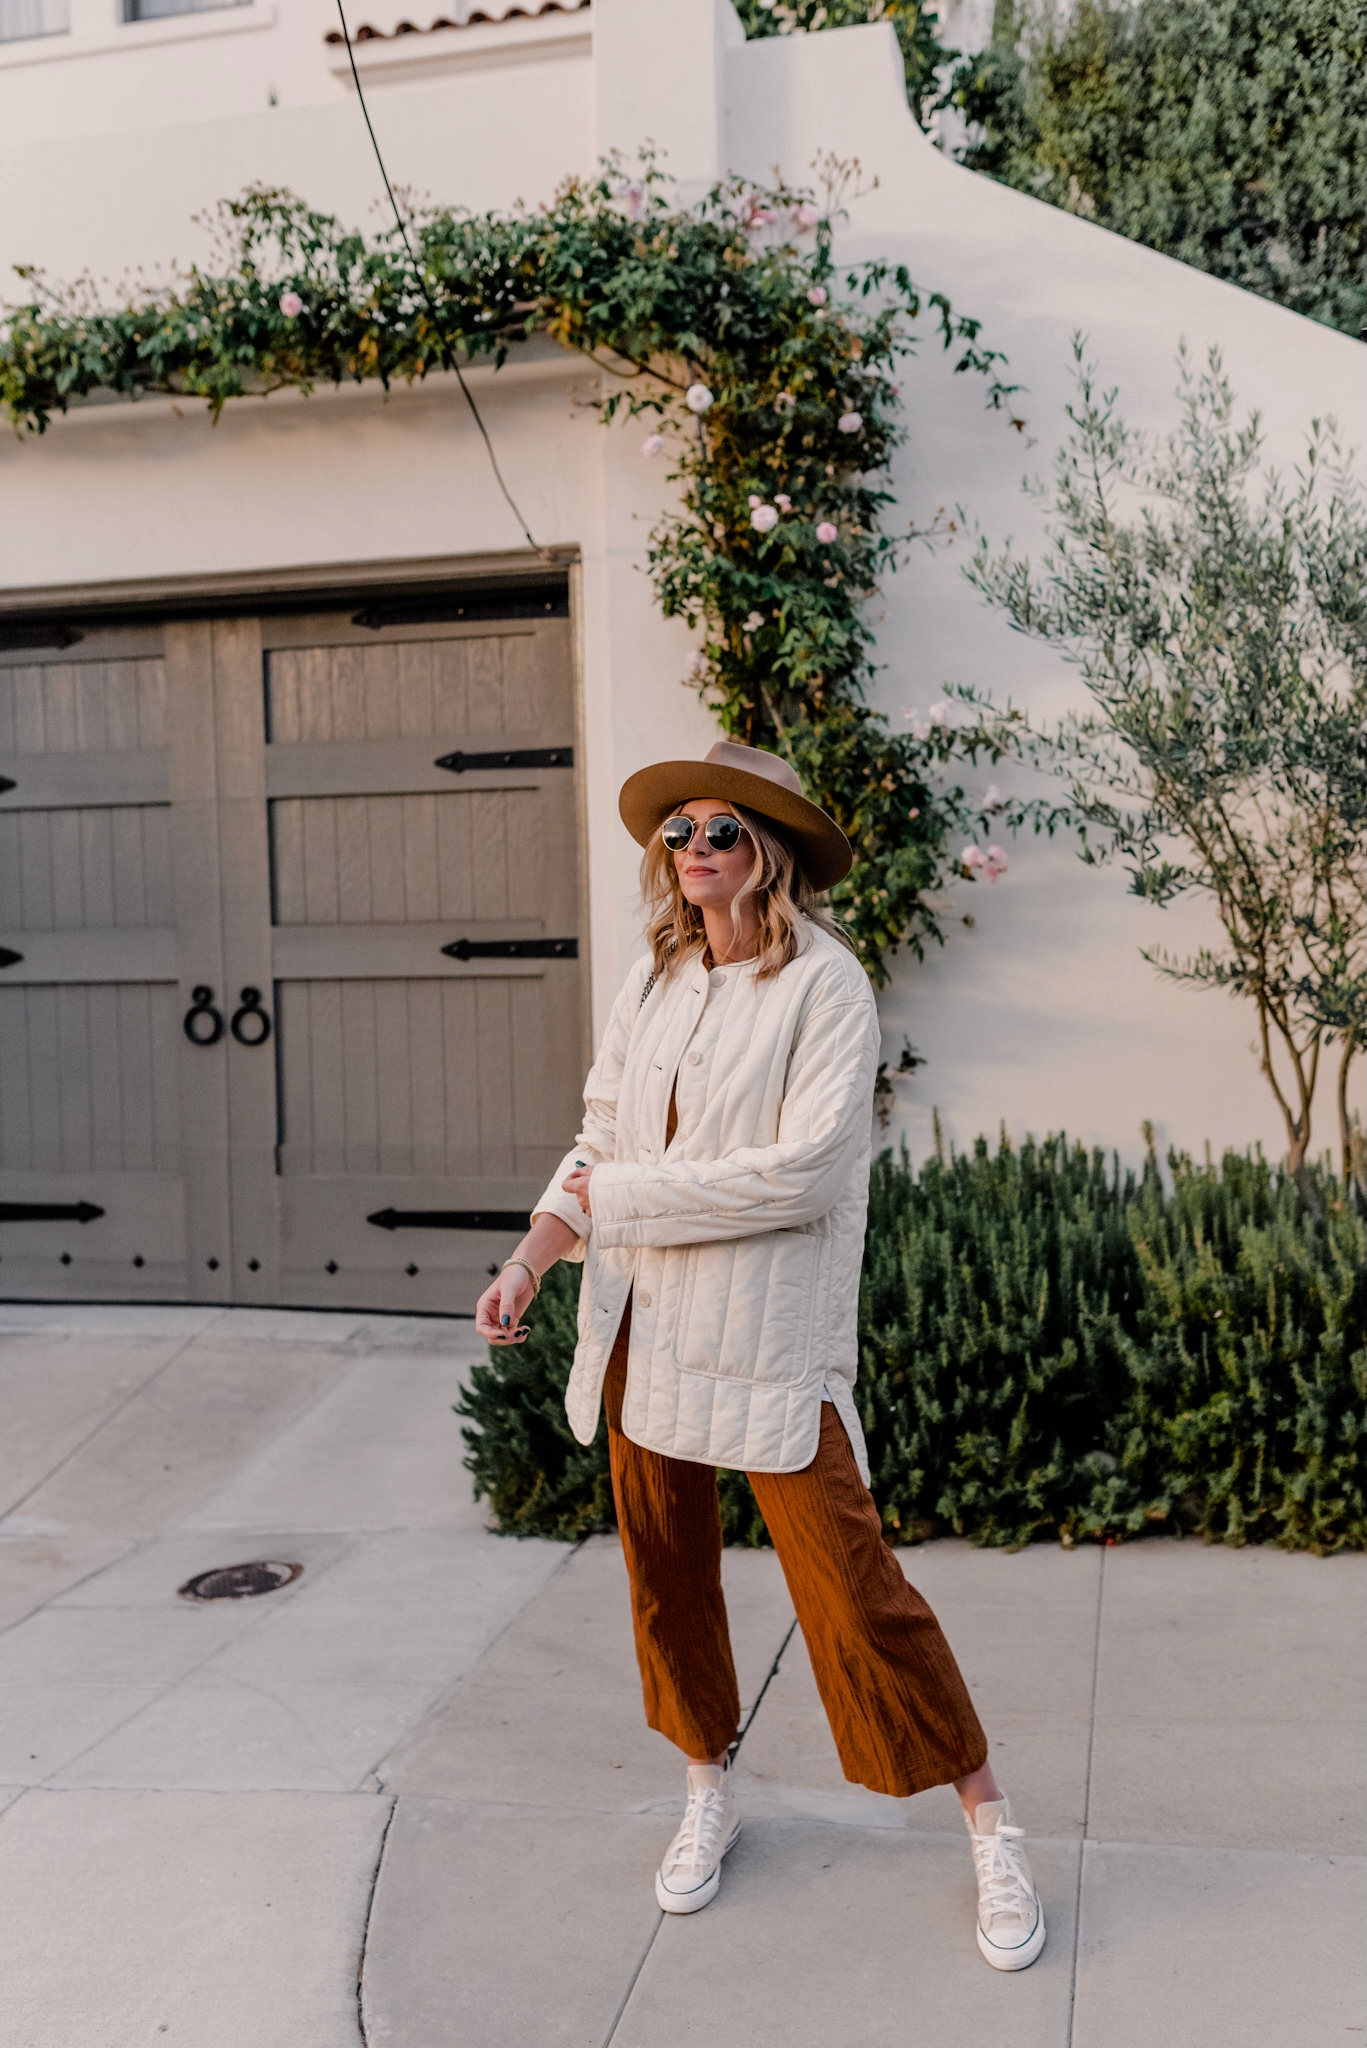 winter new arrivals im loving |New Arrivals by popular San Diego fashion blog, Navy Grace: image of a woman wearing a White Quilted Jacket, Jumpsuit, Converse Sneakers, Fedora Hat, and Handbag.